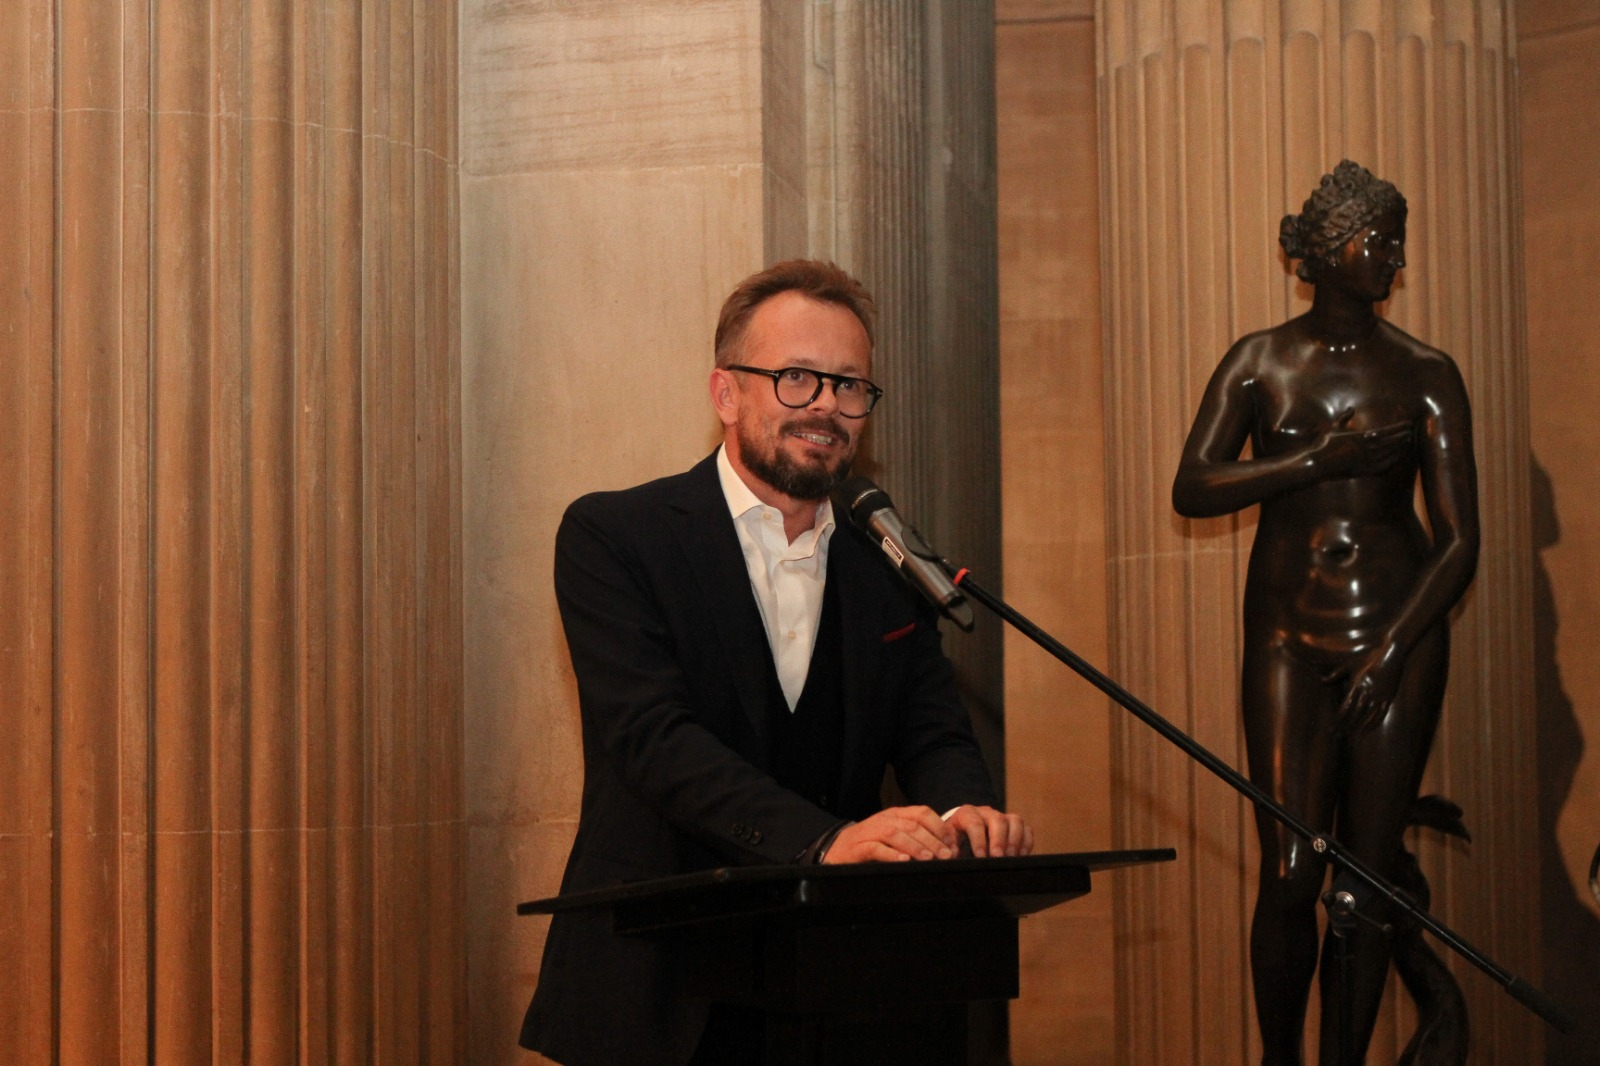 Mikolaj Sekutowicz, Curator of Therme Art giving a speech at Blenheim Palace